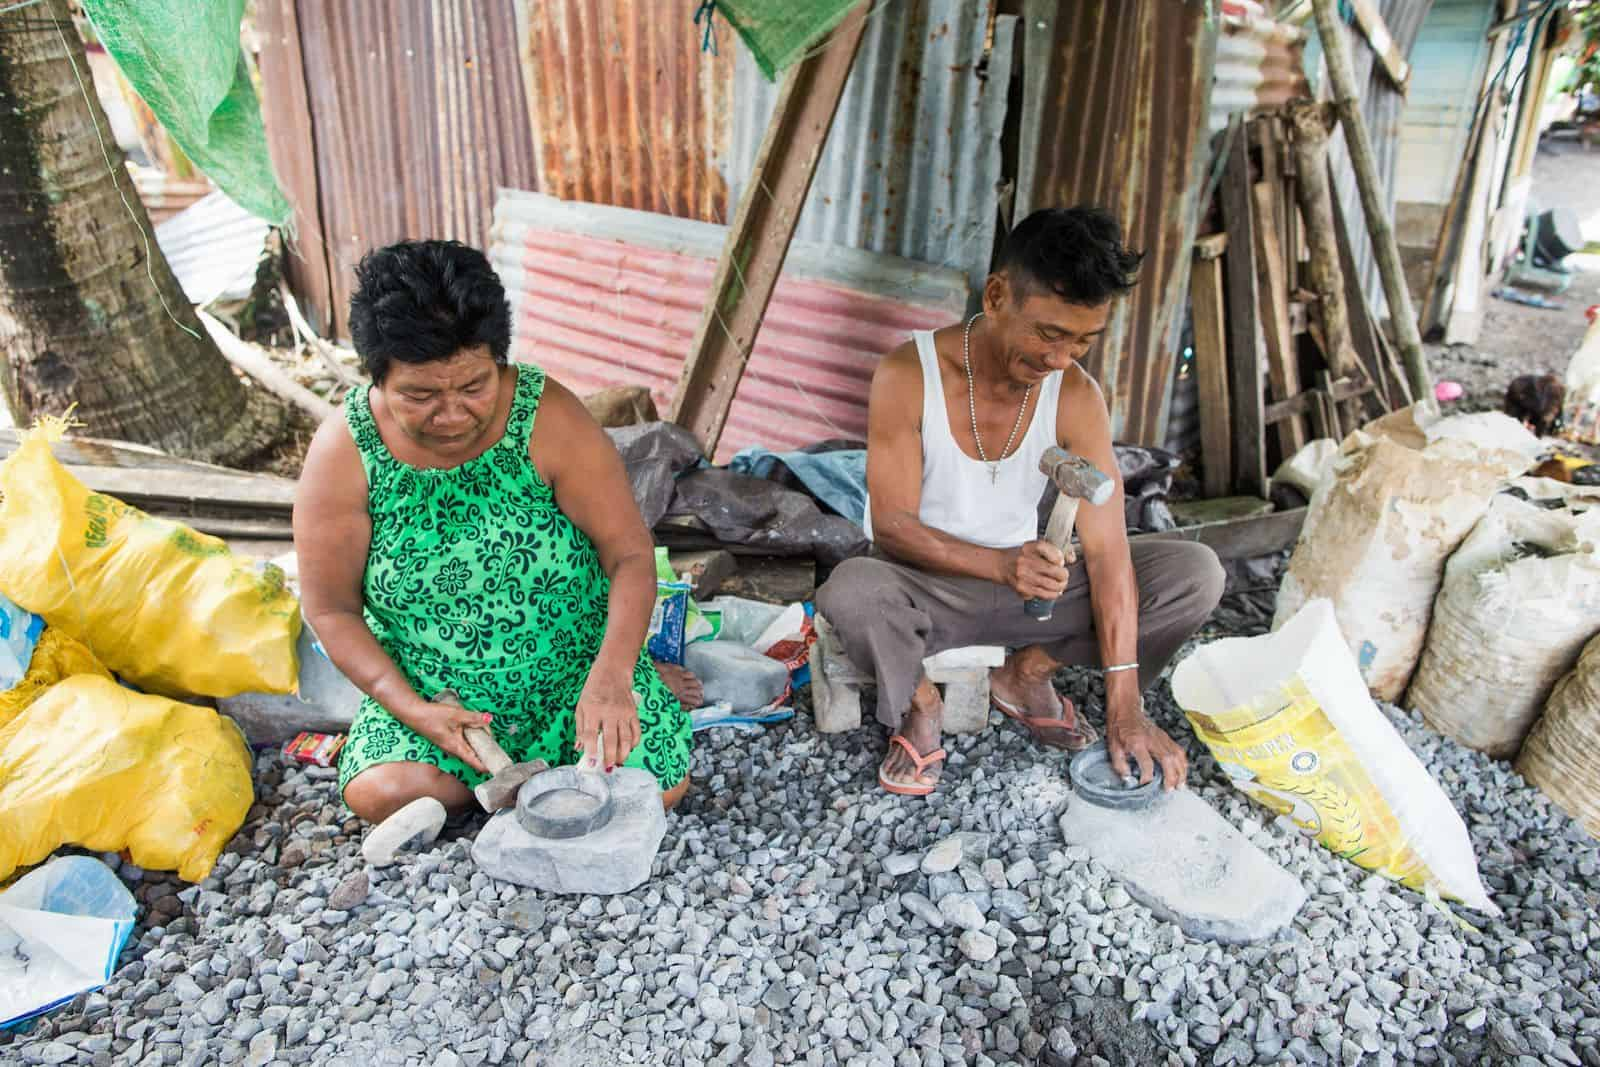 A man and woman crouch on the ground breaking rocks with small hammers.